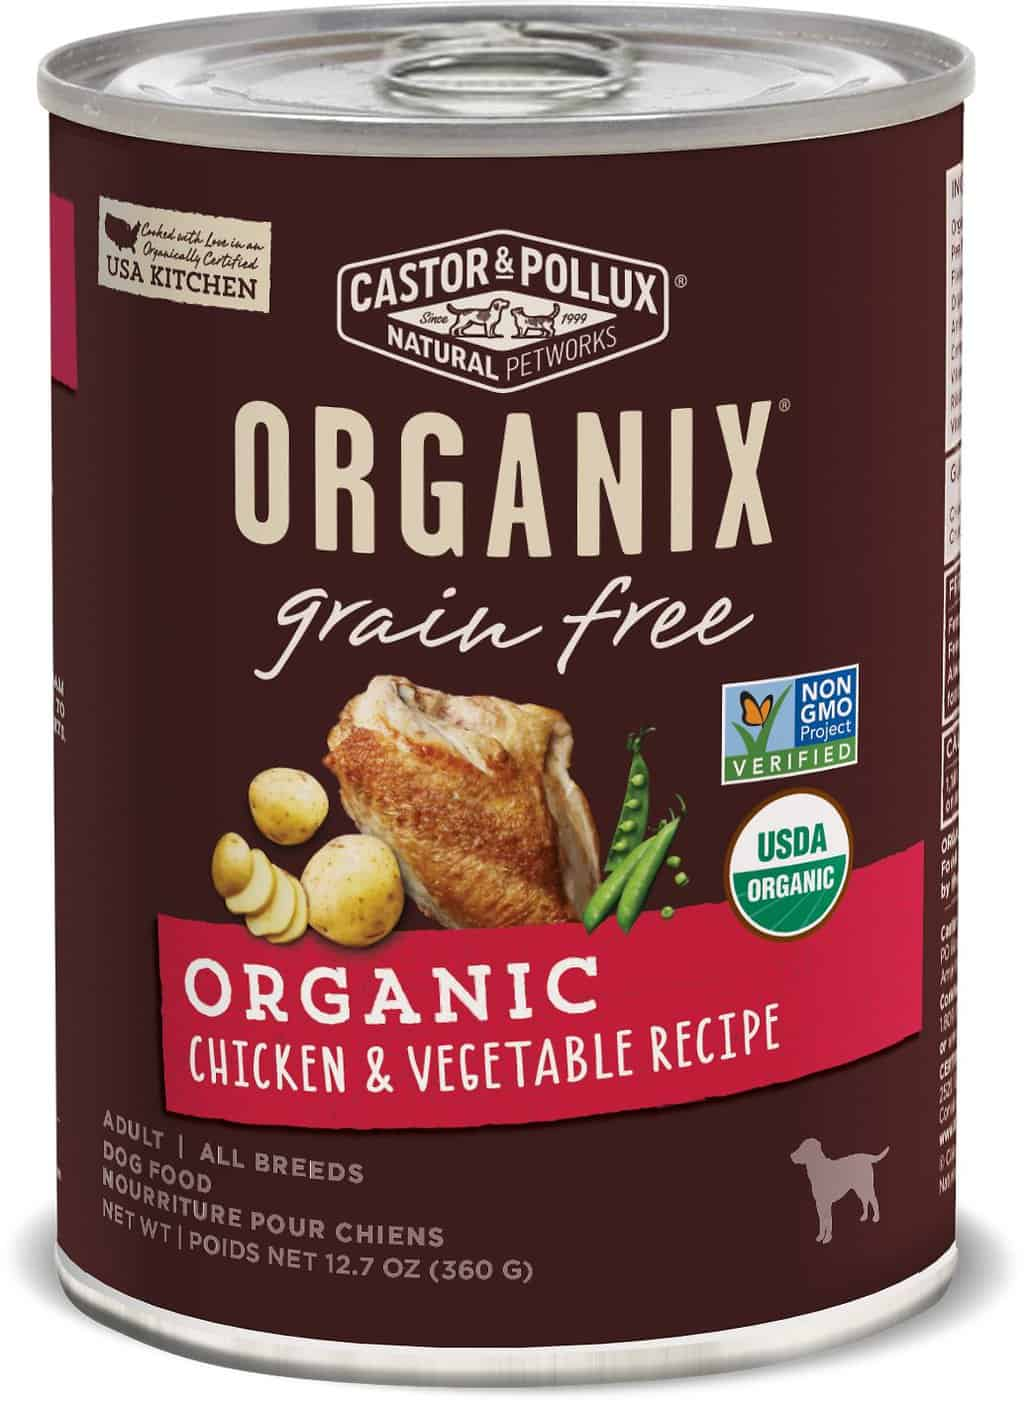 Castor and Pollux Dog Food: 2020 Review, Recalls & Coupons 14